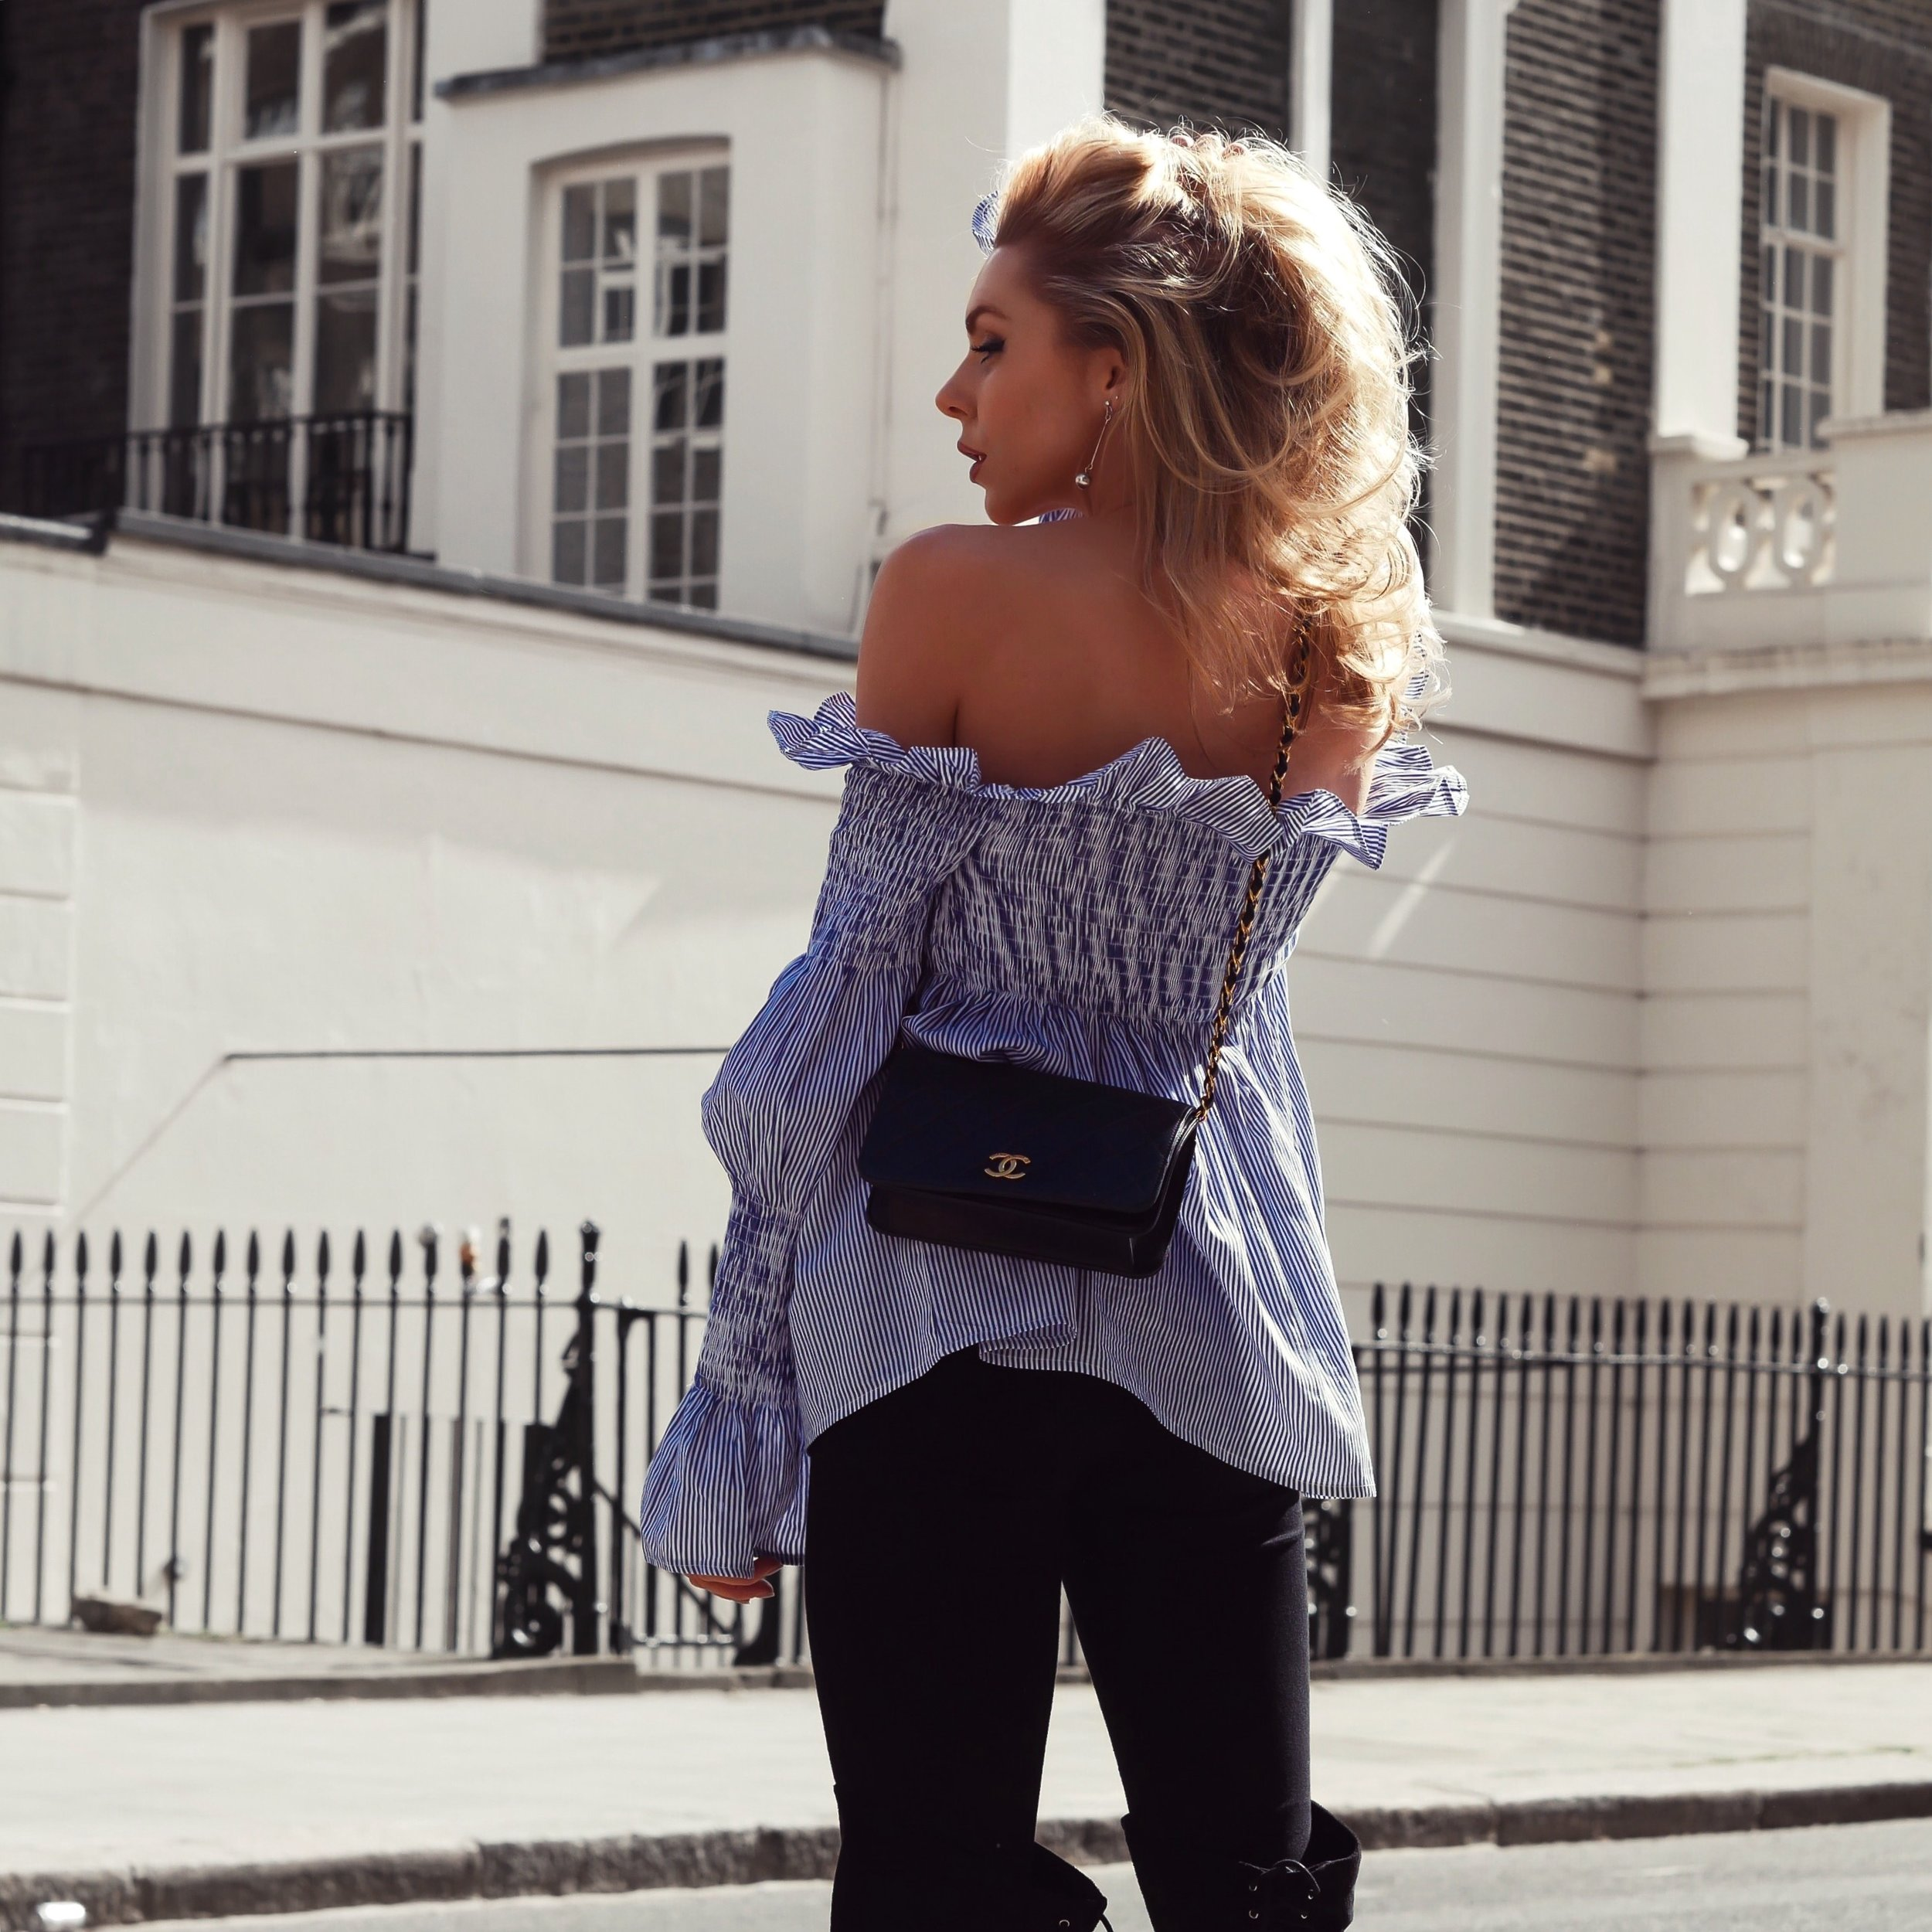 haul, affordable fashion, streetstyle, inspiration, what to wear, fashion, lookbook, style, fashion blogger, laura blair, youtuber, london fashion girl, chanel handbag, luxury bag, designer bag